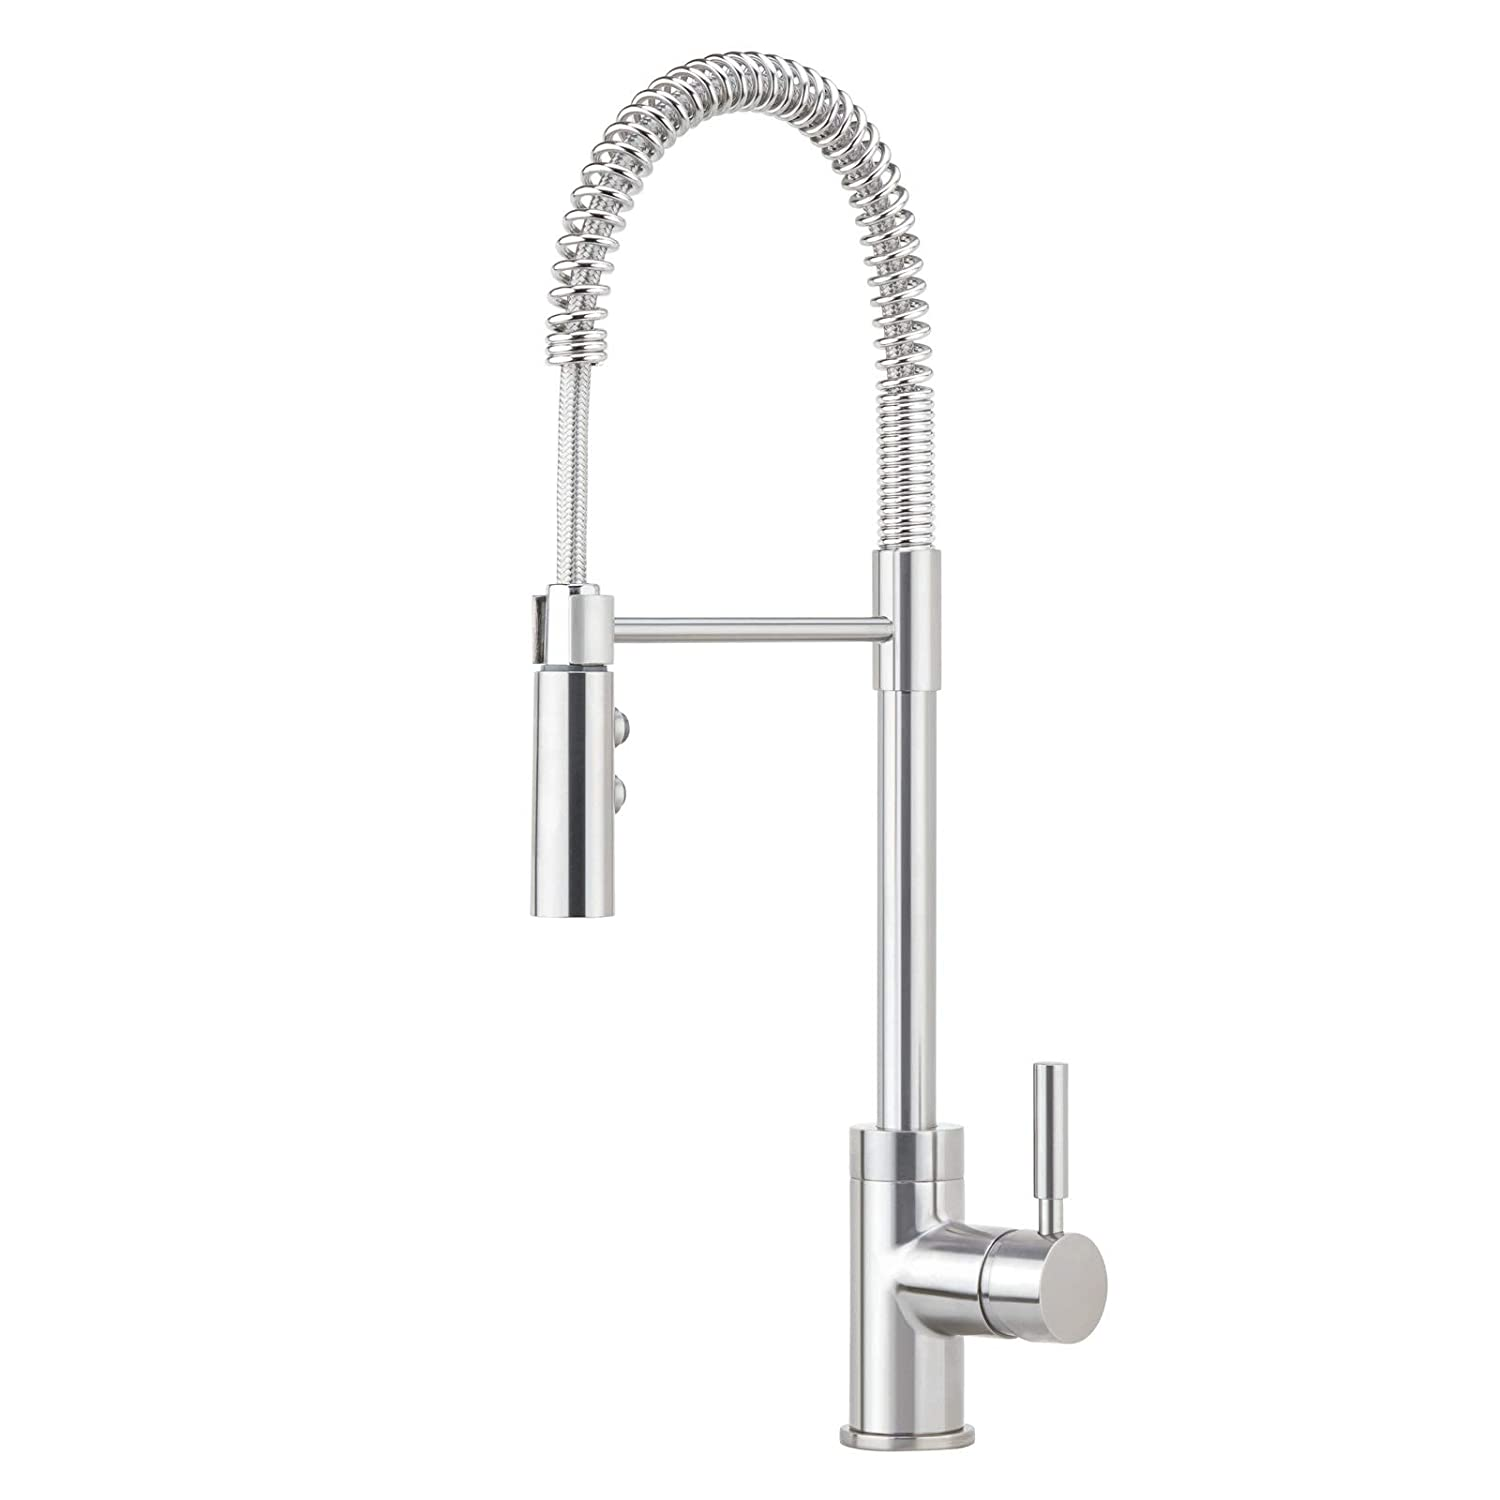 Miseno MK6557-SS Professional Commercial Style Pre-Rinse Kitchen Faucet - Includes and Decorative Deck Plate